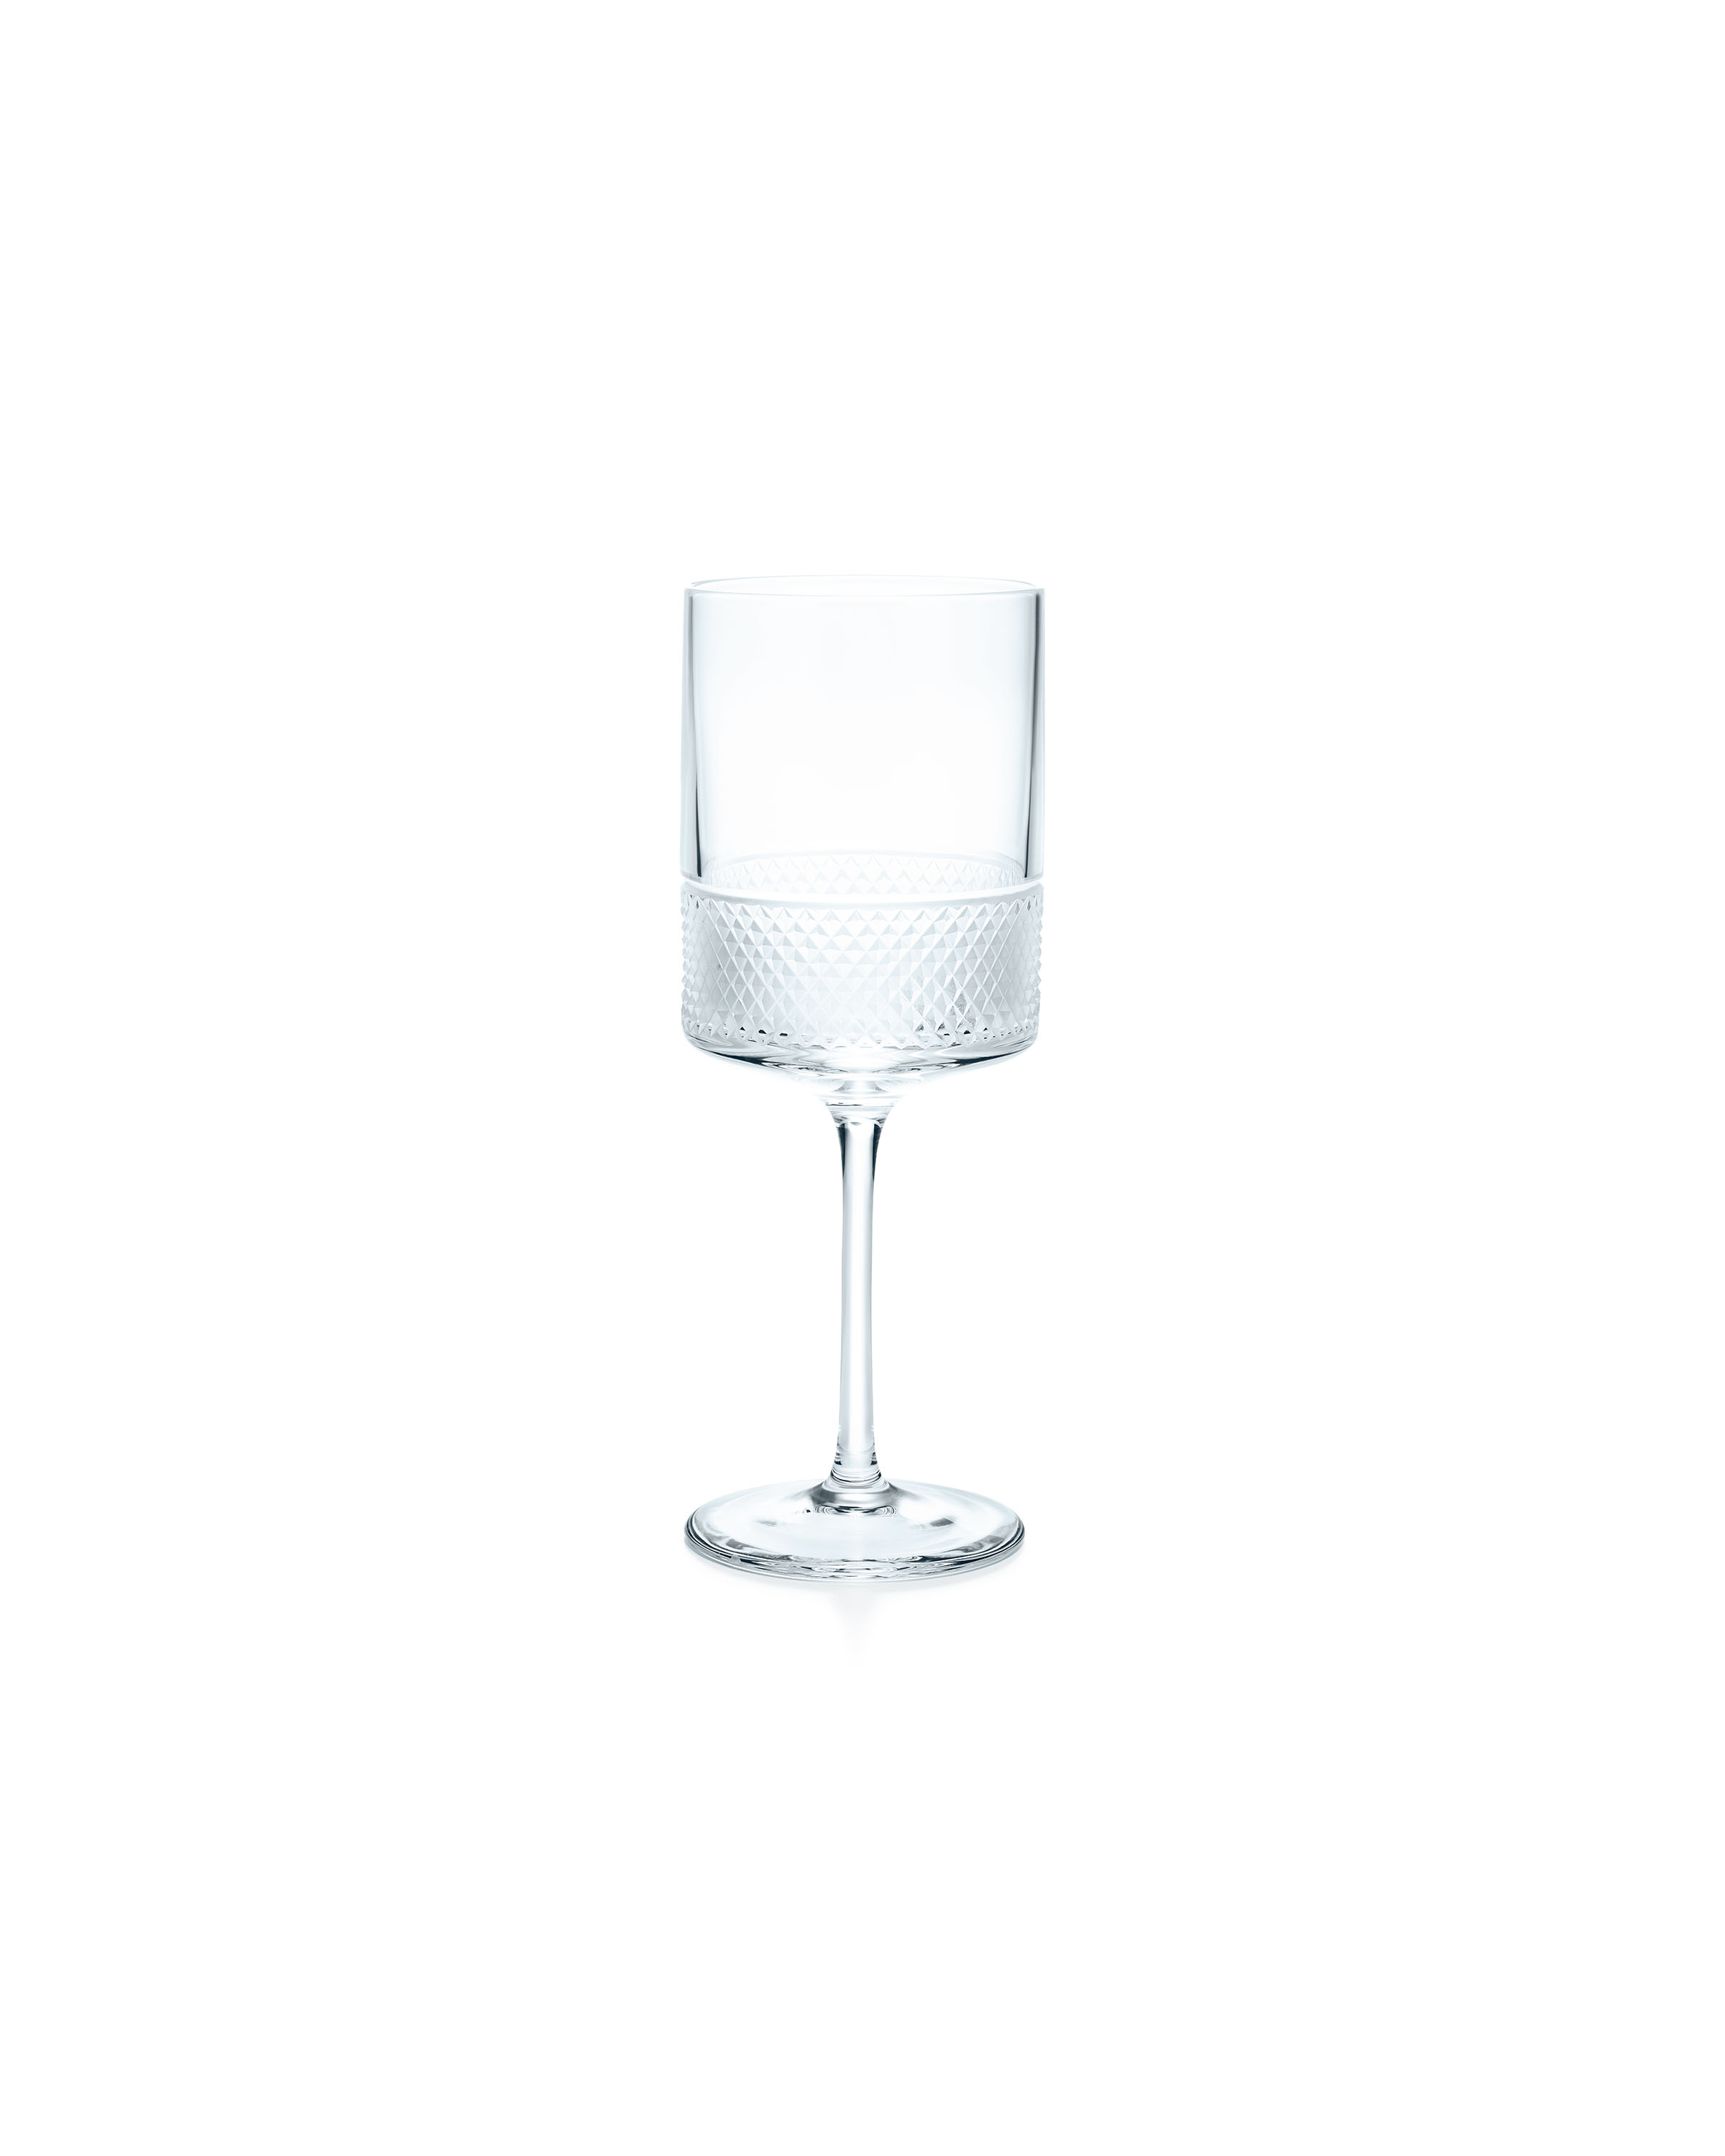 Tiffany & Co. Diamond Point wine glass in crystal glass, $65.00. (Photo Credit: Tiffany & Co.)